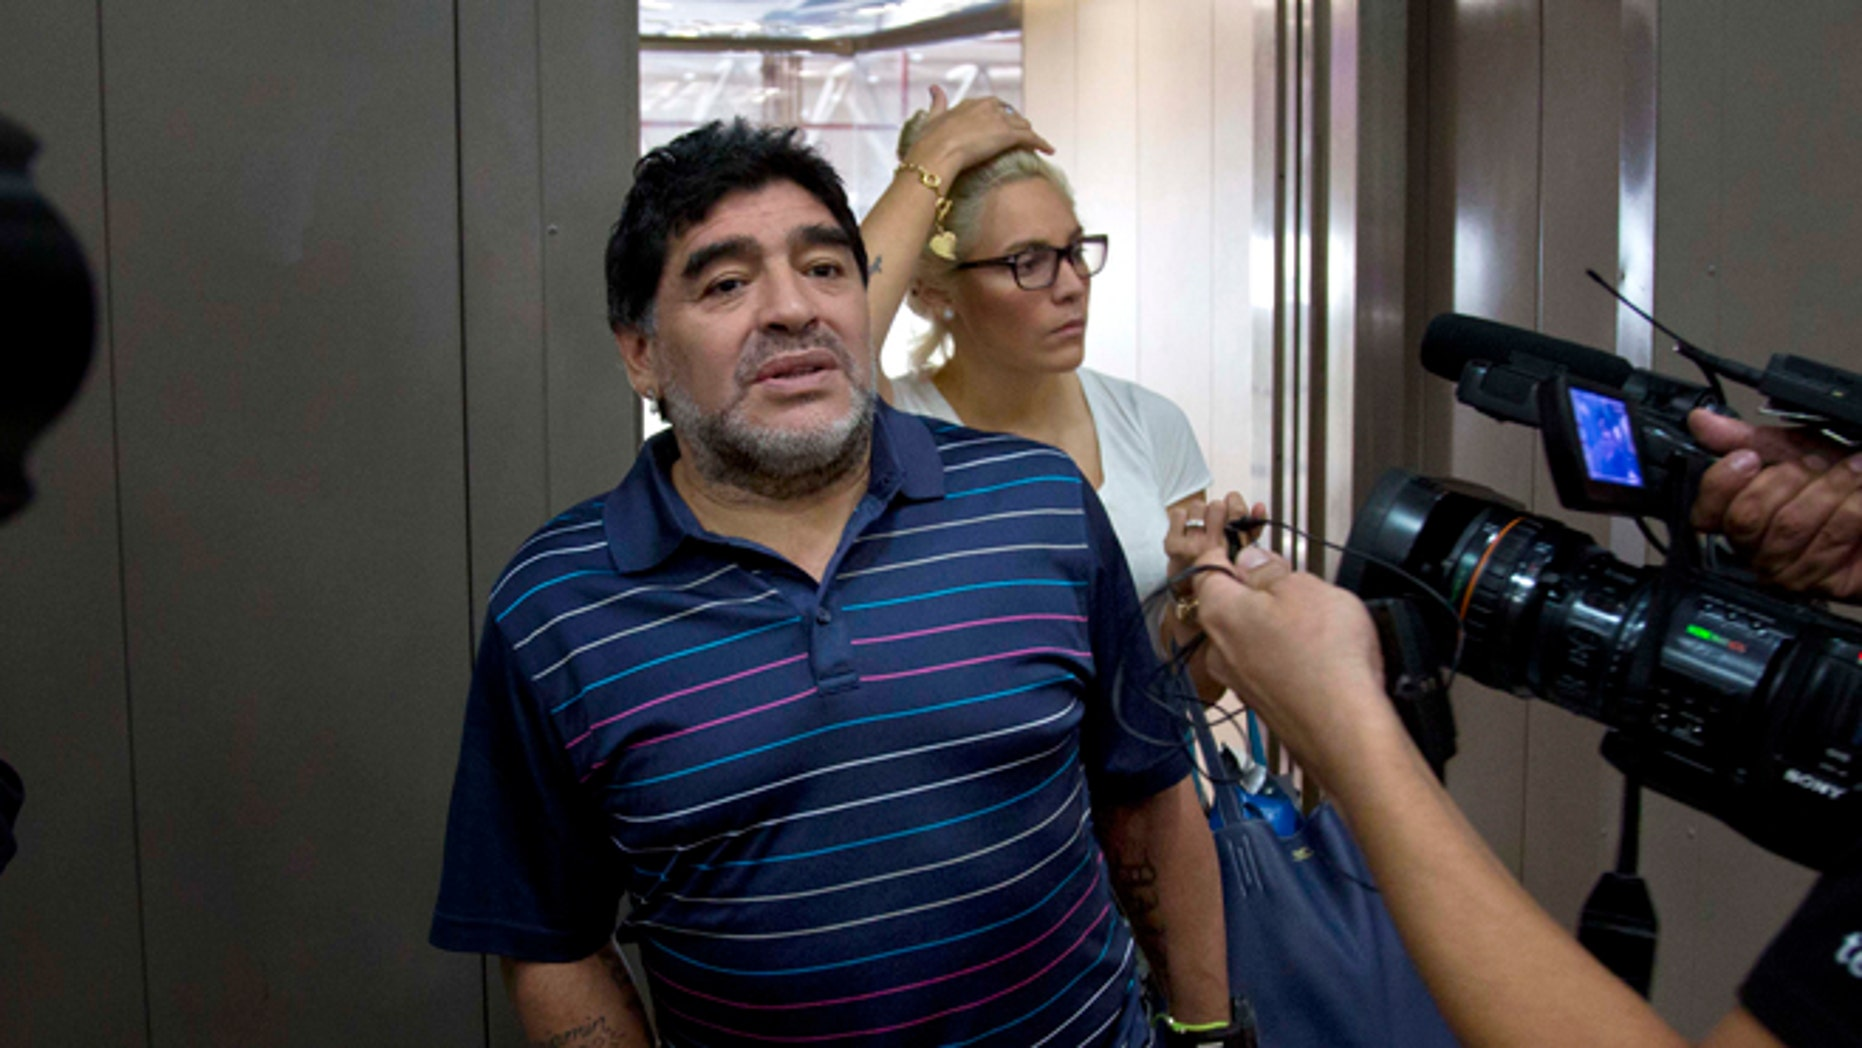 Argentina's soccer legend Diego Armando Maradona talks to journalists at the airport on his way to catch a departing plane in Havana, Cuba, Monday, Jan. 12, 2015. Behind is his girlfriend Rocio Oliva. Fidel Castro on Monday sent Maradona a letter written to quash rumors of the Cuban leader's death, state-run television network Telesur reported. It was the first reported word from Castro in nearly three months. The network showed photos of Maradona with the letter signed by Castro, 88. Telesur revealed nothing about the contents of the letter, but said it rebutted rumors he had died. (AP Photo/Ramon Espinosa)